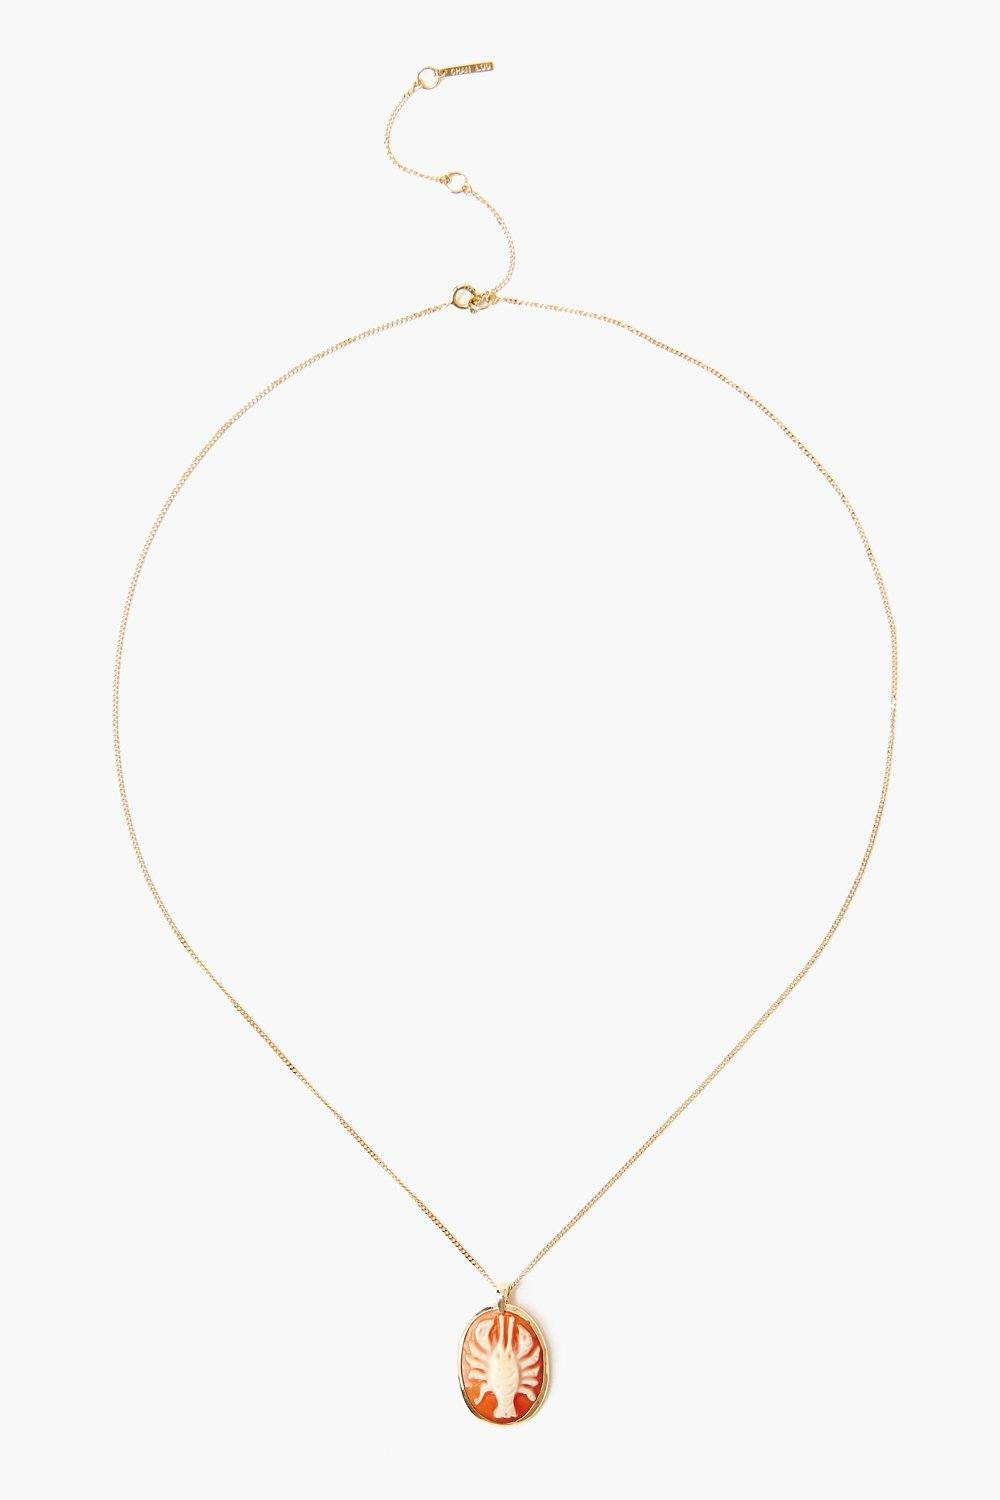 14k La Mer Lobster Necklace